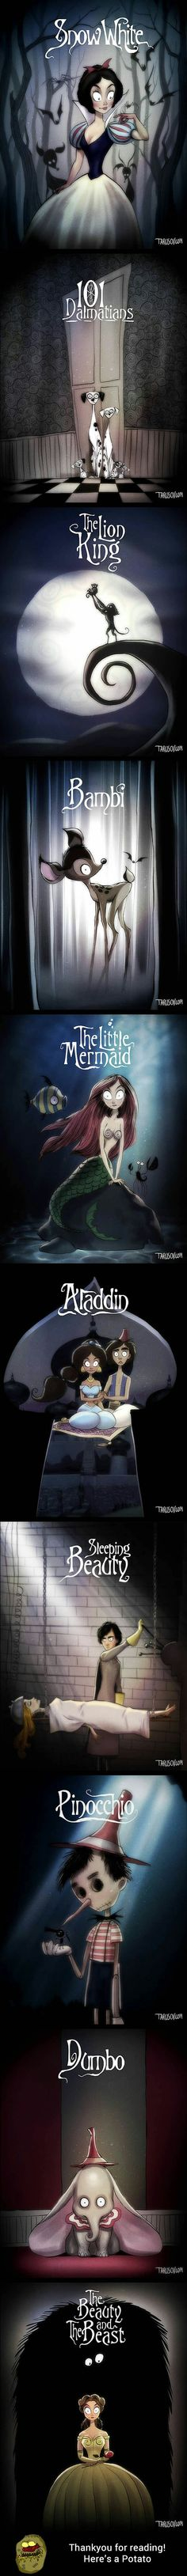 If the Disney movies were designed by Tim Burton